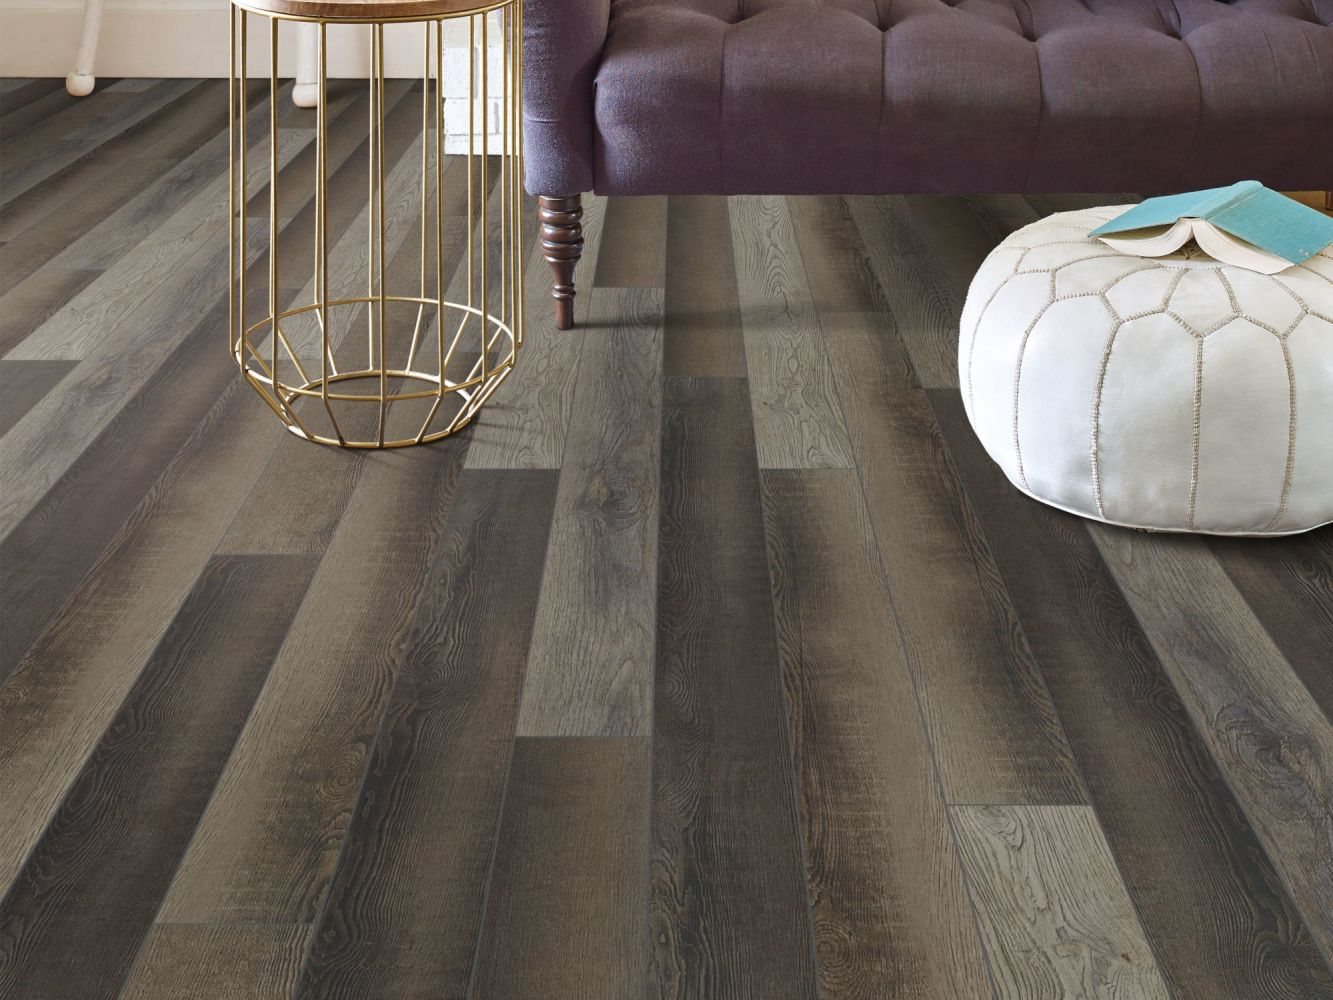 Shaw Floors Resilient Residential Paragon 5″ Plus Blackfill Oak 00909_1019V